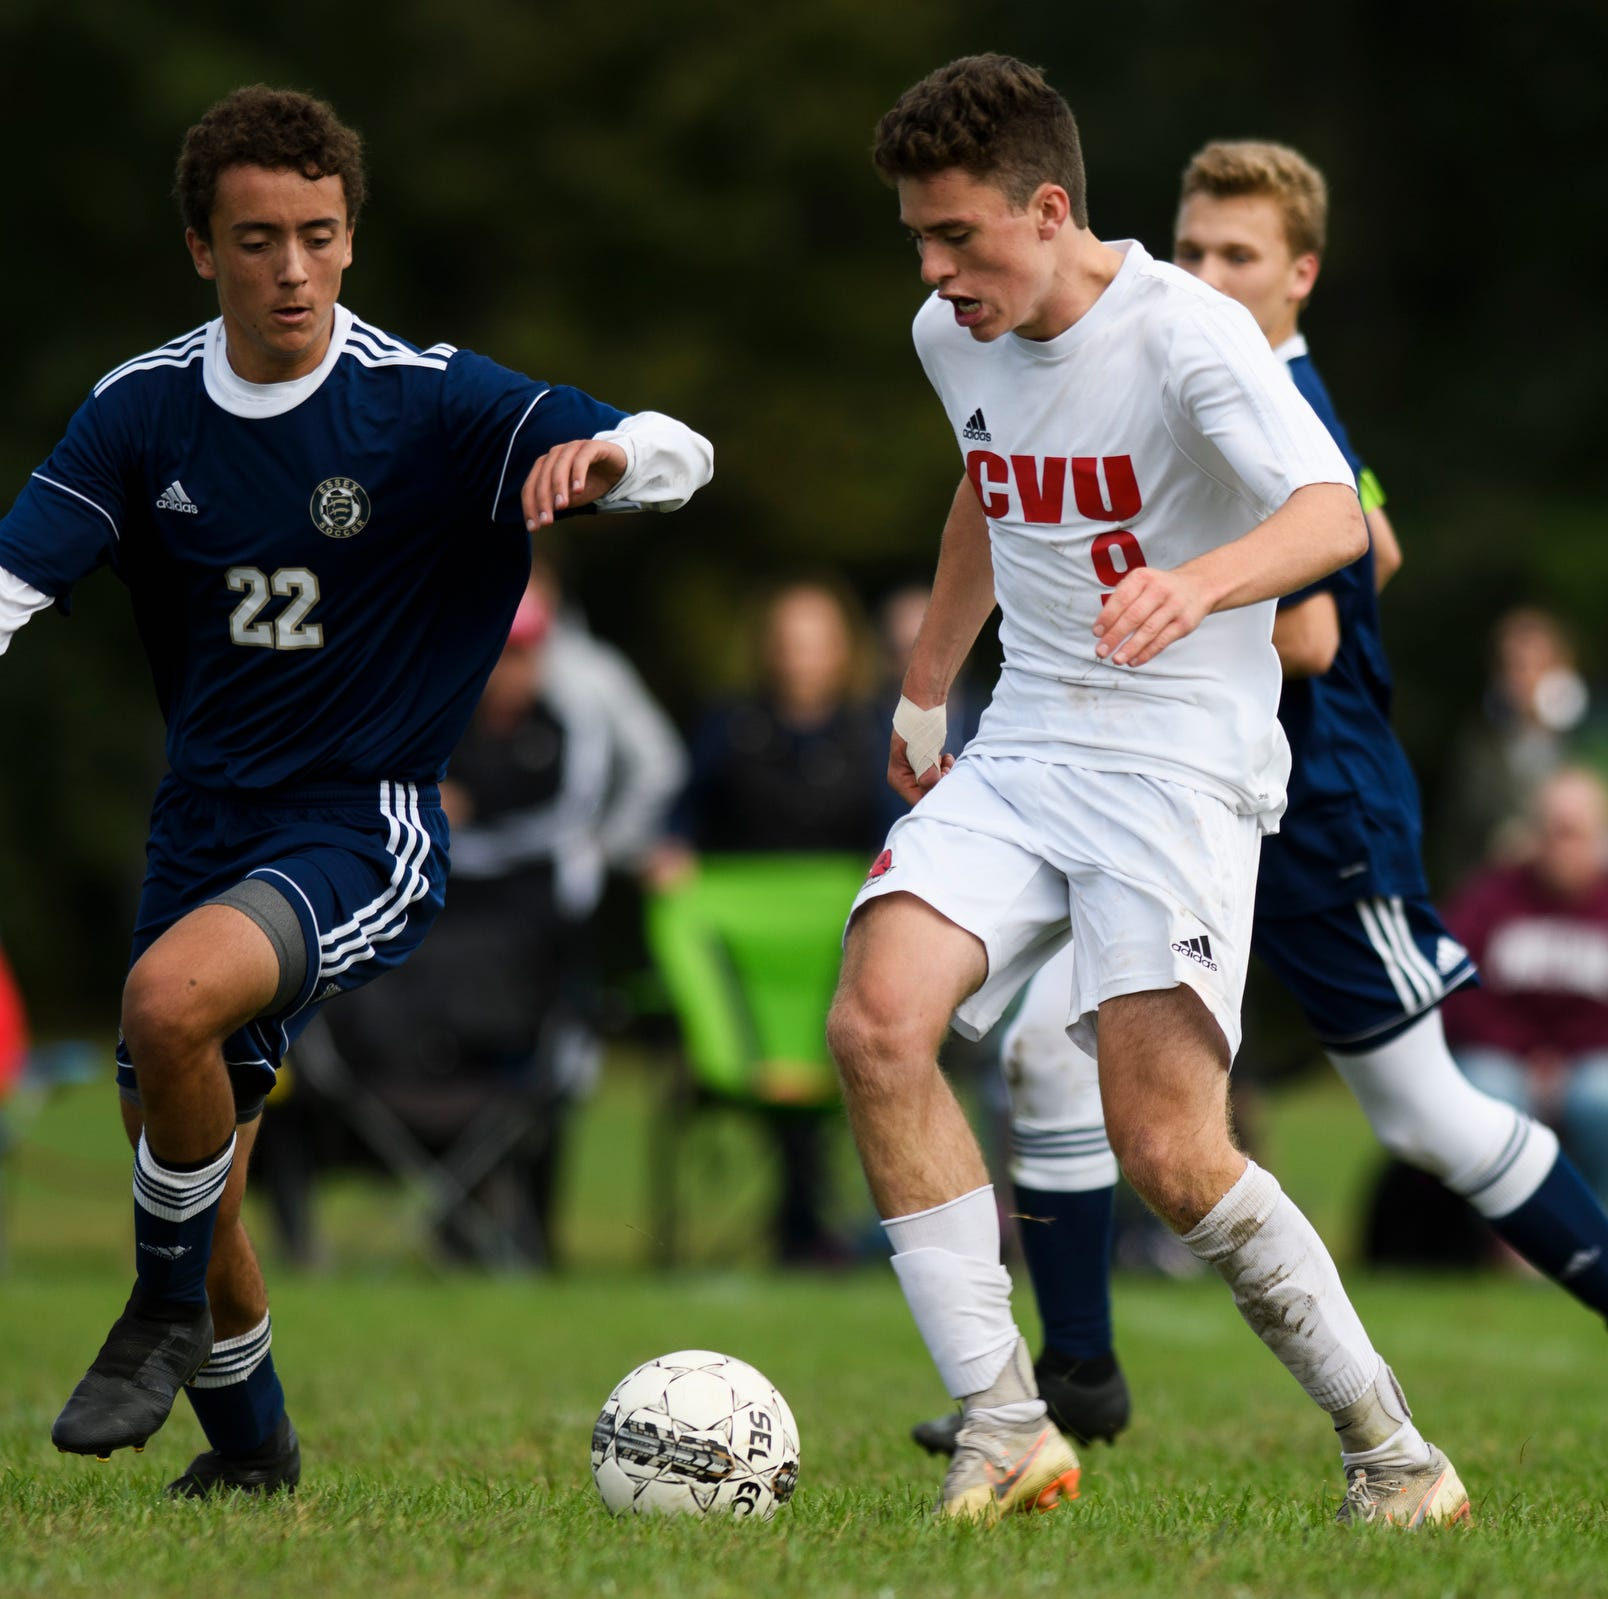 Vermont high school highlights: CVU soccer edges Rice in 2OT